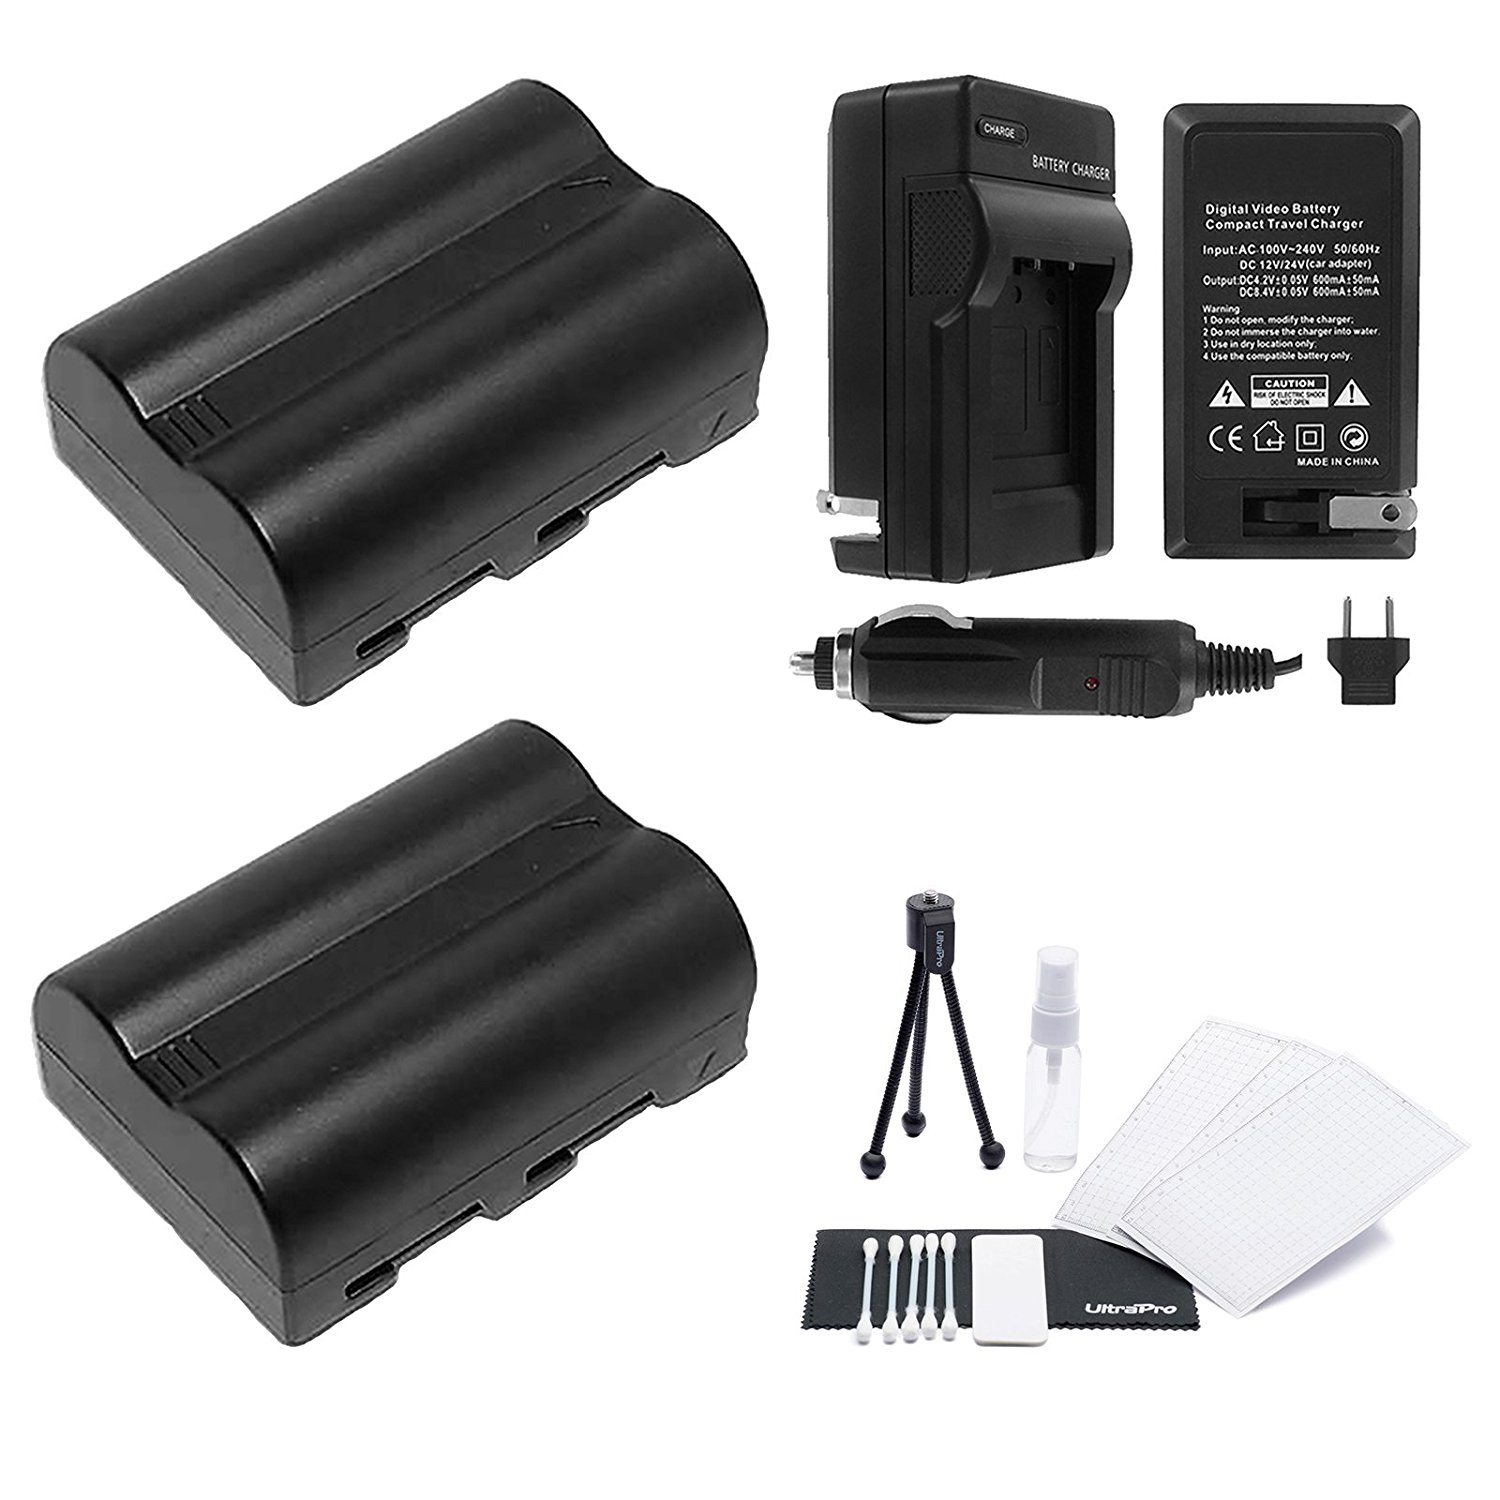 D3000 and D40 EN-EL9a Battery 2-Pack Bundle with Rapid Travel Charger and UltraPro Accessory Kit for Select Nikon Cameras Including D5000 D40x D60